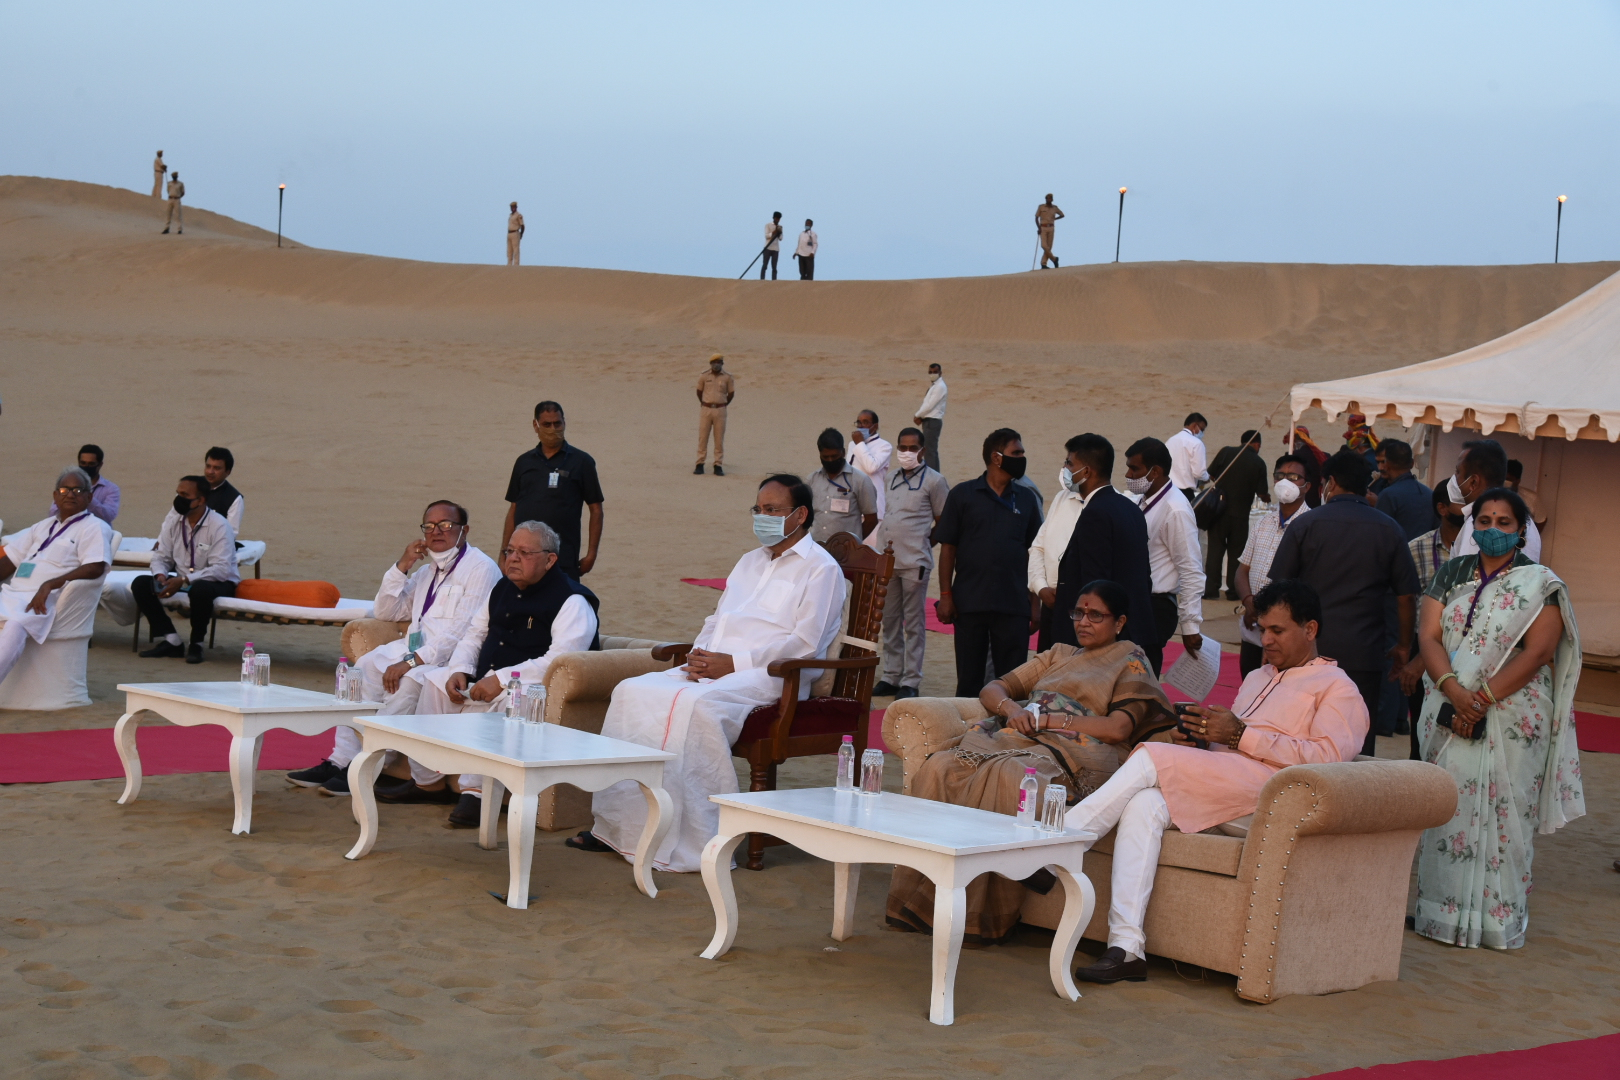 The Vice President, Shri M. Venkaiah Naidu, visiting the sand dunes and witnessing a cultural performance in Rajasthan on September 26, 2021.